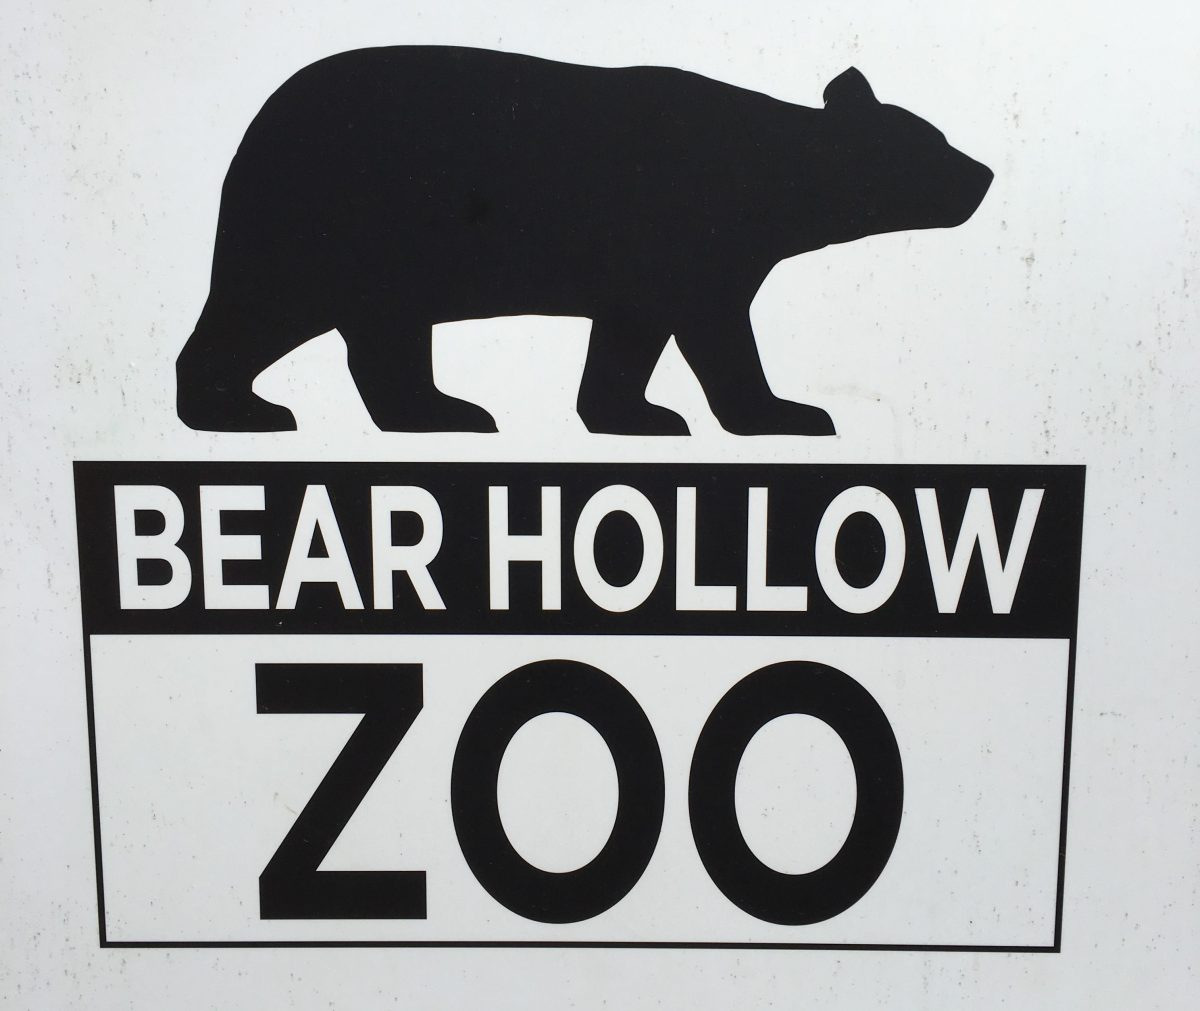 Seeing Georgia's Wildlife at Bear Hollow Zoo